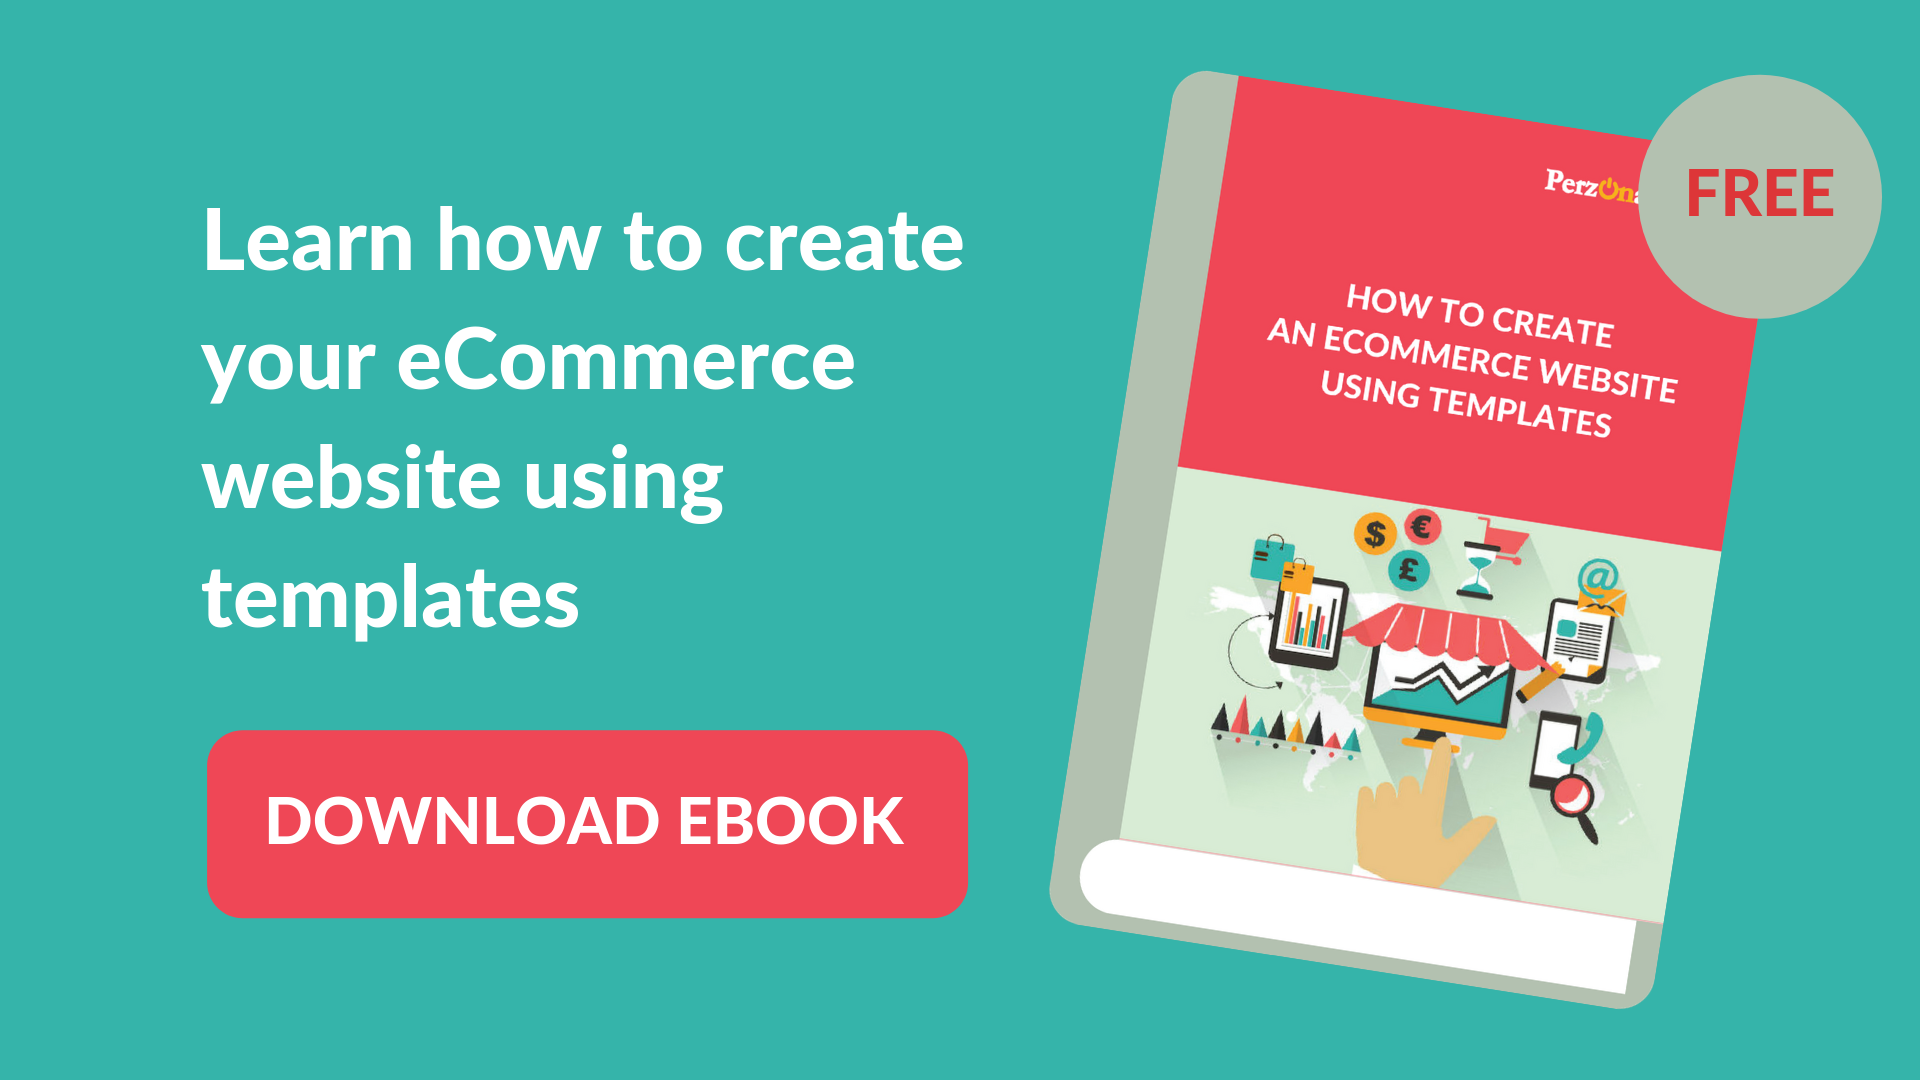 Download your free eBook: How to create an eCommerce website using templates